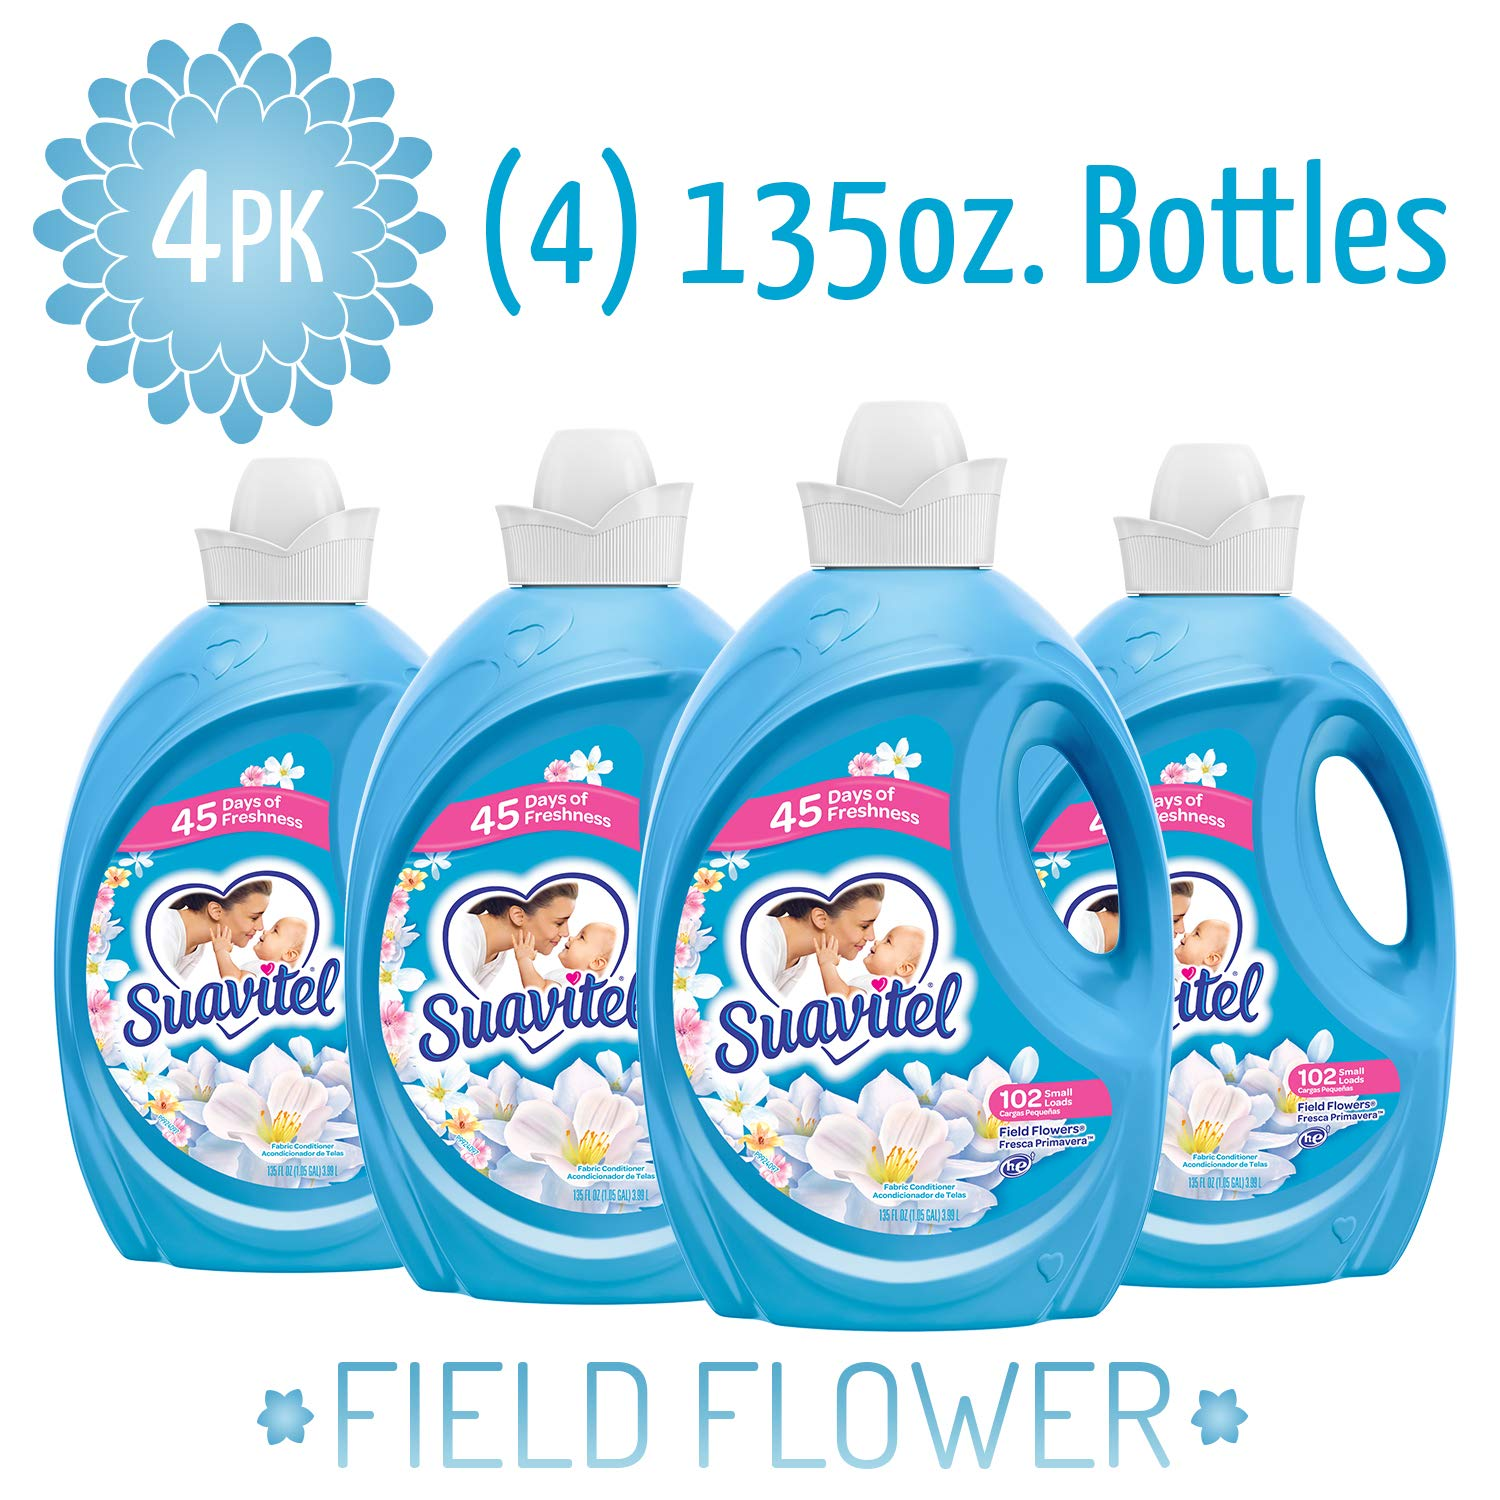 SUAVITEL Fabric Softener, Field Flowers, 102 Laundry Loads, Laundry Supplies, Long Lasting, Sensitive Skin Fabric Softener, Softens Clothes, 135 Ounce Bottle (Pack of 4) (Model Number: 139371) by Suavitel